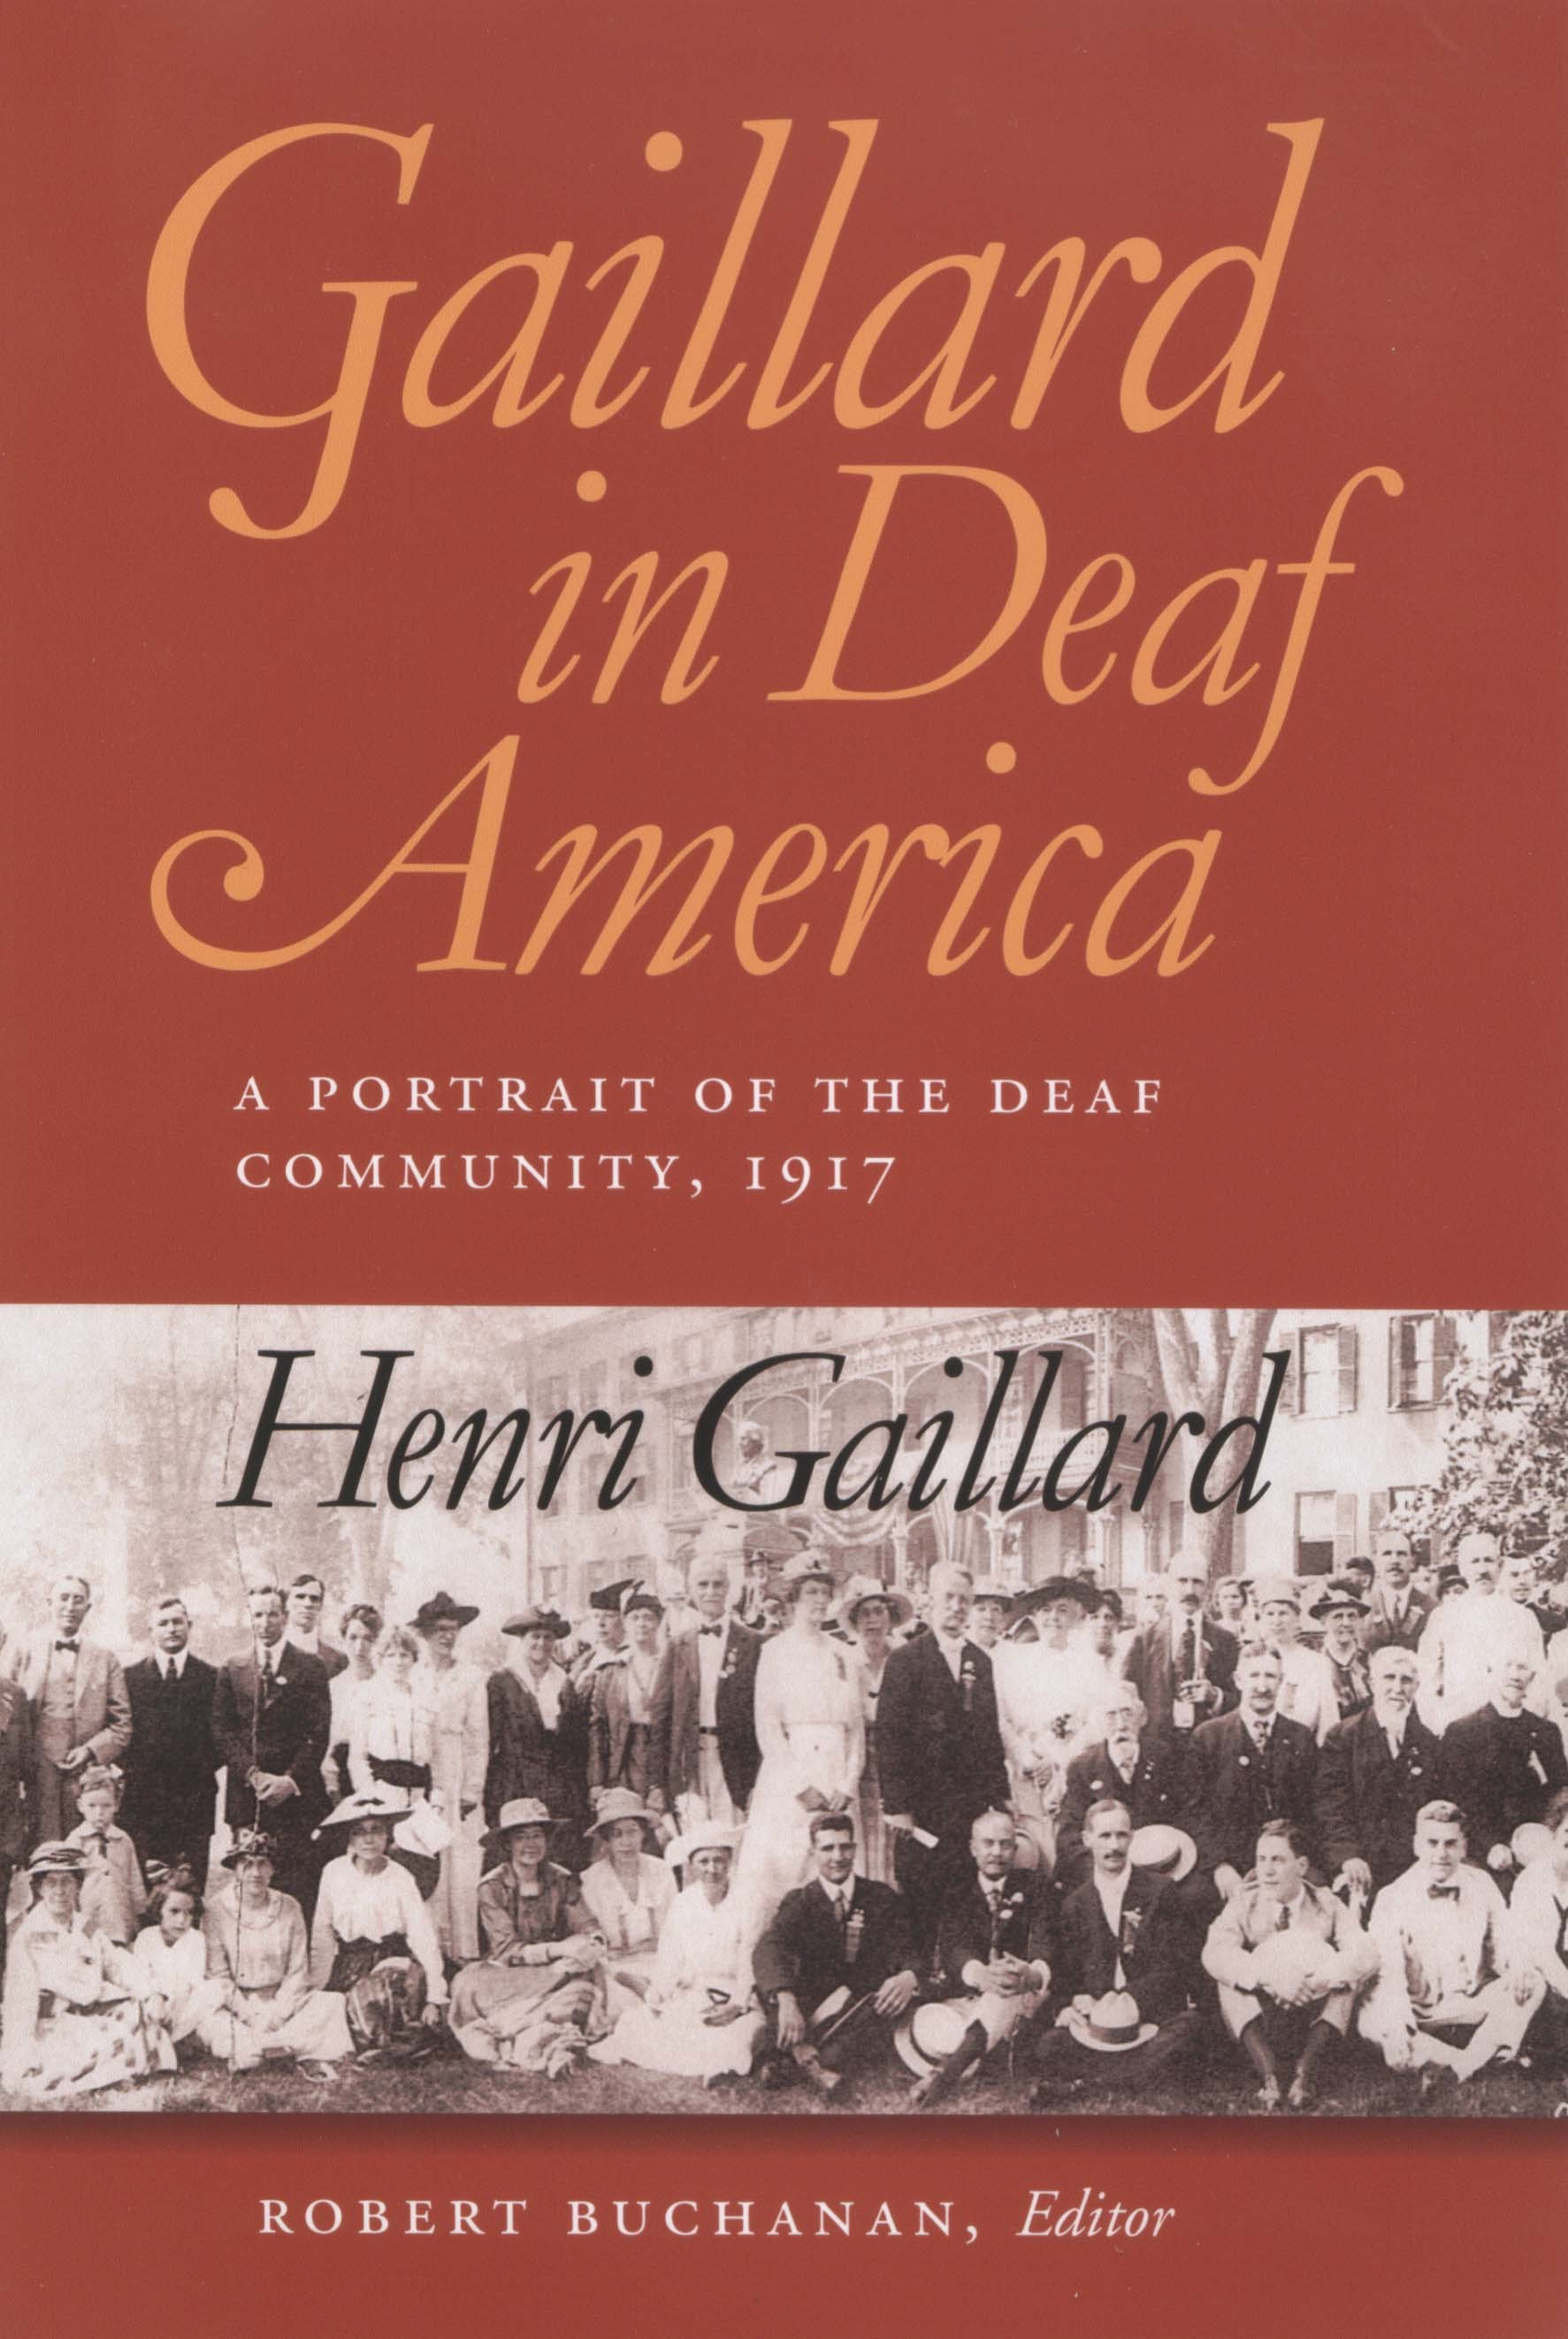 Gaillard in Deaf America A Portrait of the Deaf Community, 1917, Henri Gaillard (Gallaudet Classics in Deaf Studies Series)